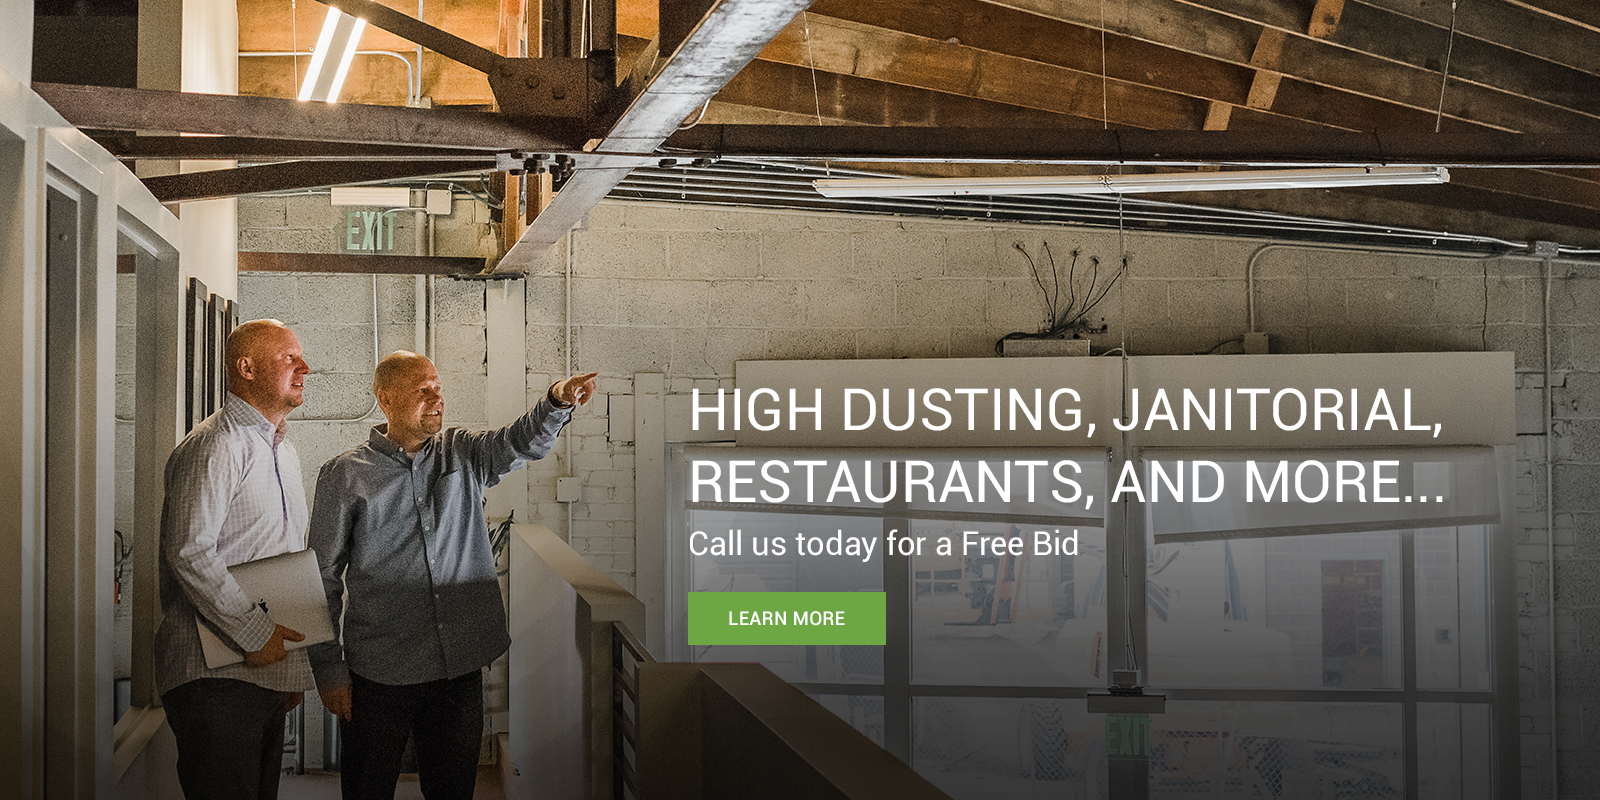 High Dusting, Janitorial, Restaurants and More